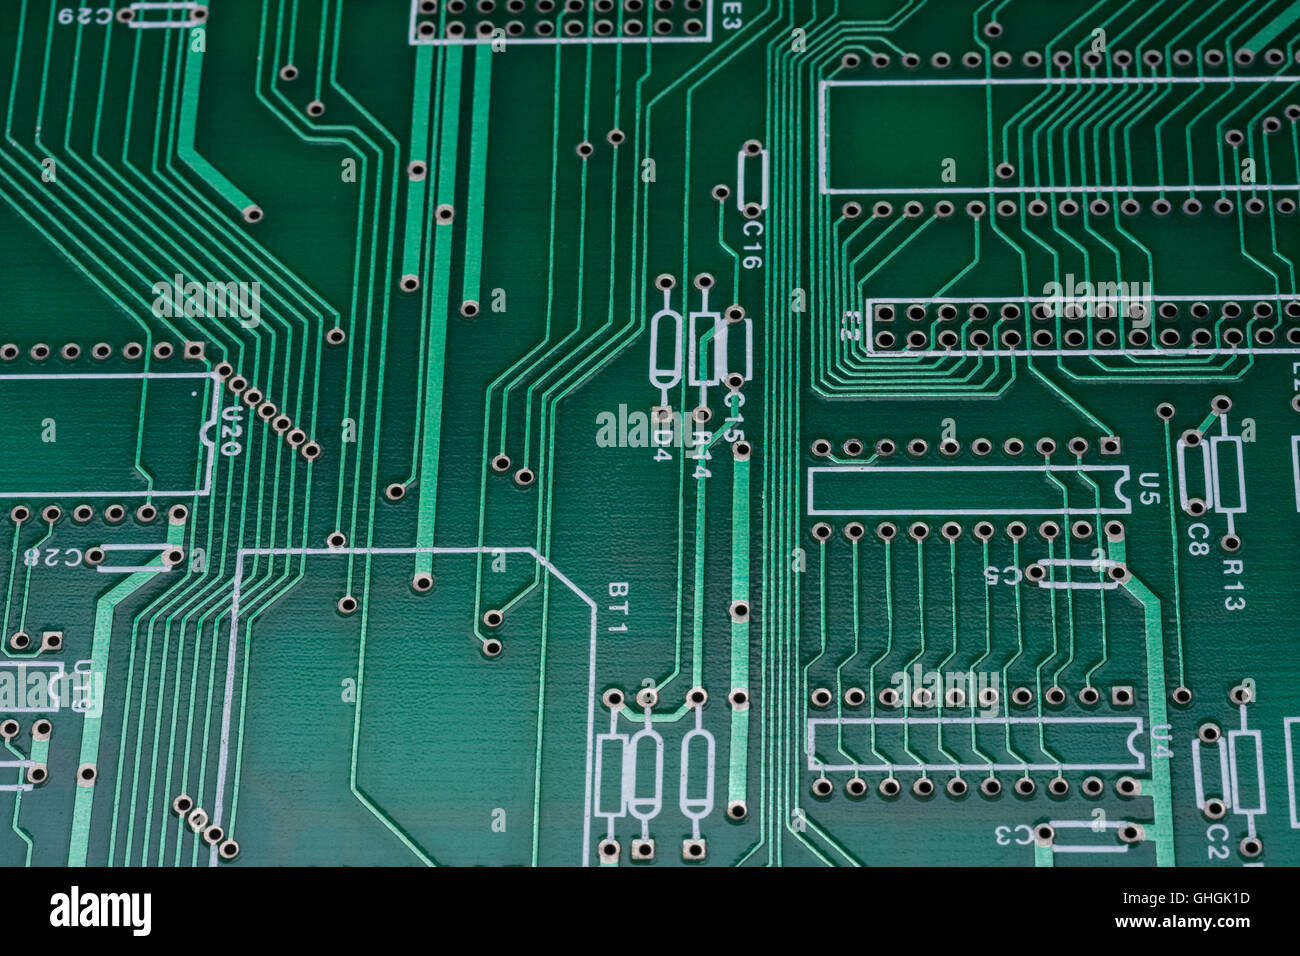 Printed Circuit Board Components Stock Photos & Printed Circuit ...